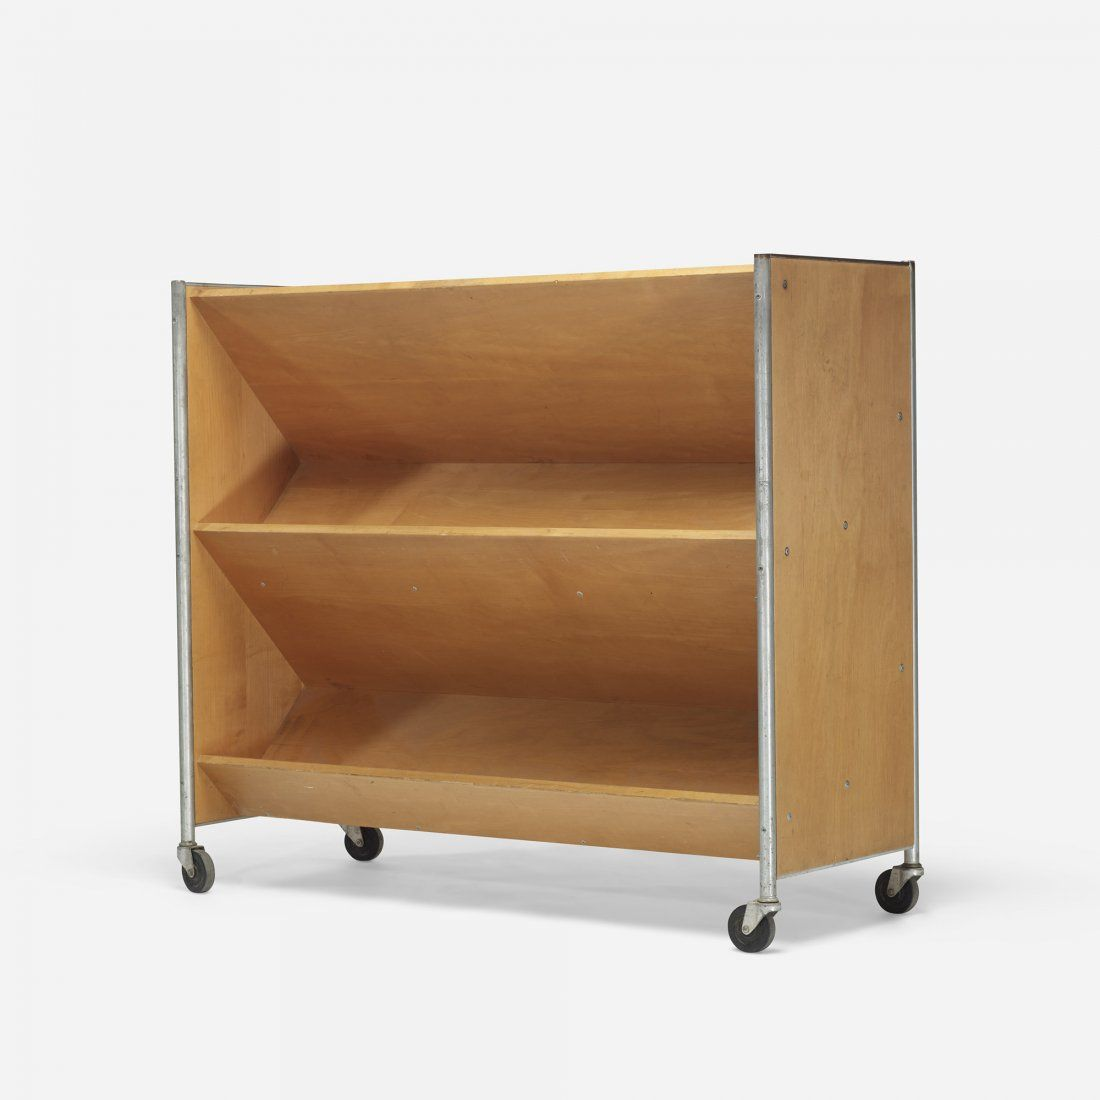 Henry Glass; Chromed Steel And Birch Book Truck For Fleetwood Furniture  Company, 1956.